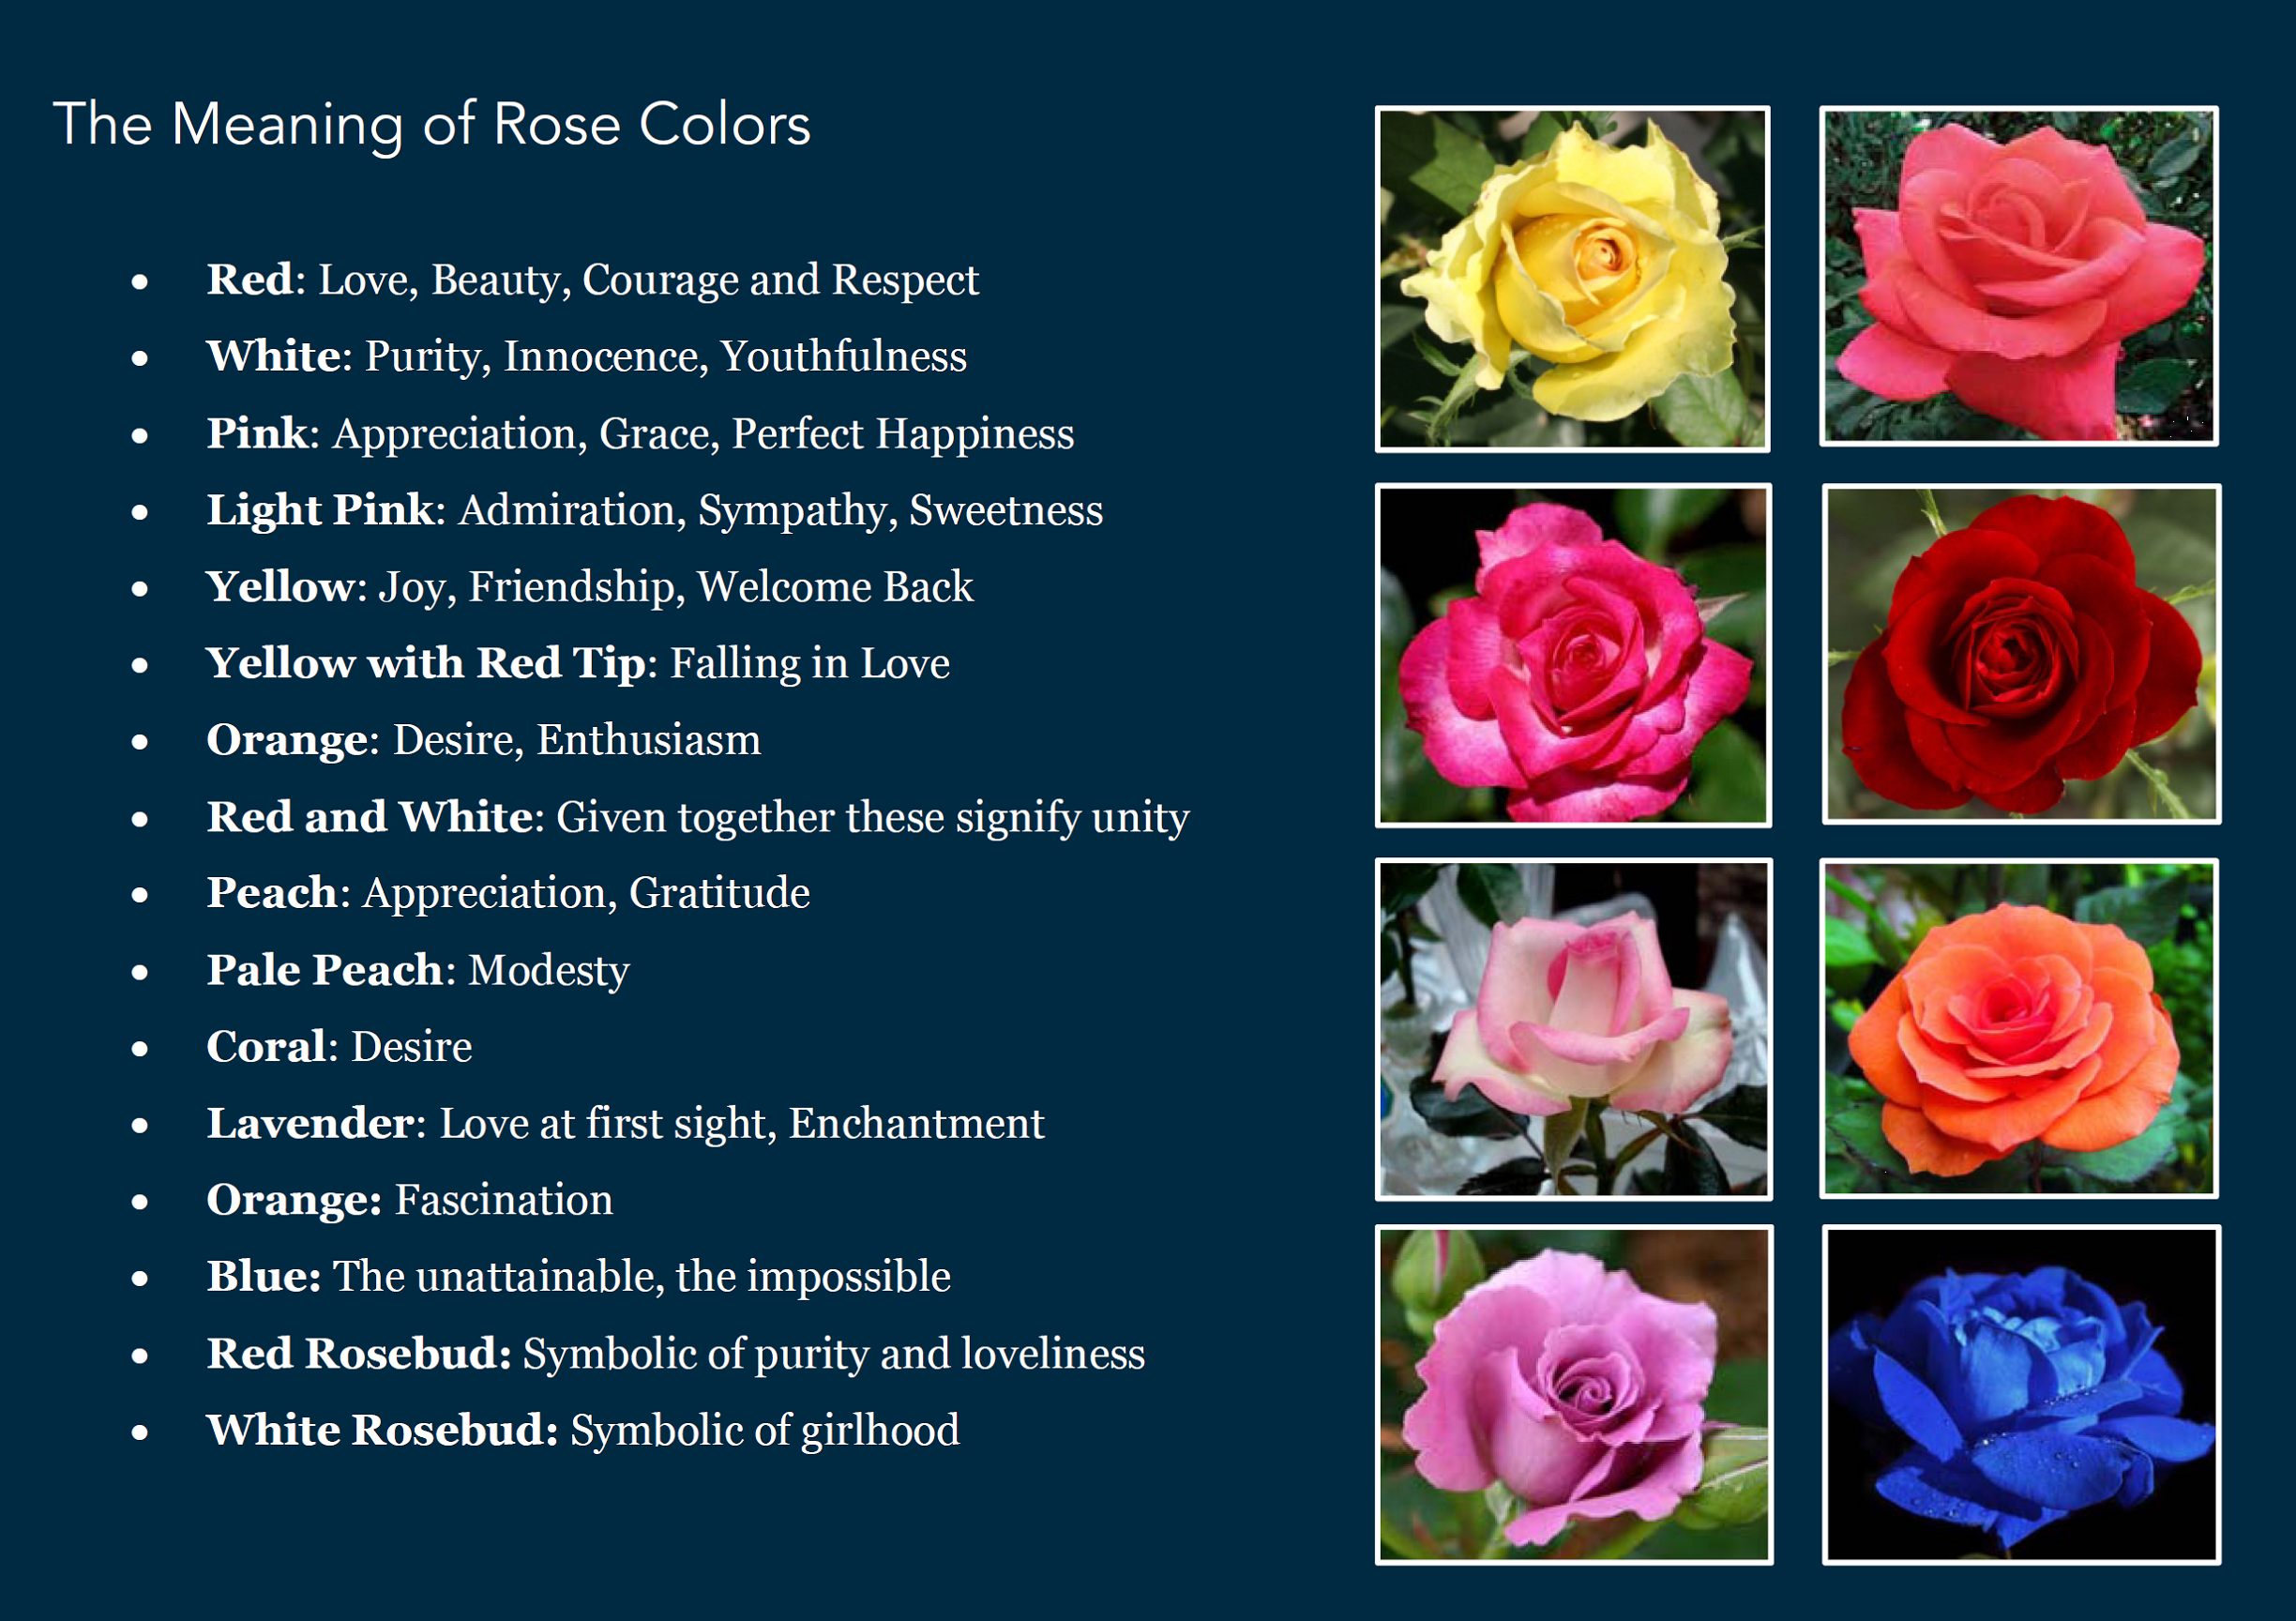 What does roses symbolize images symbol and sign ideas rosario taking care of our rose garden city part 22 for rose color meaning woodenroses buycottarizona buycottarizona